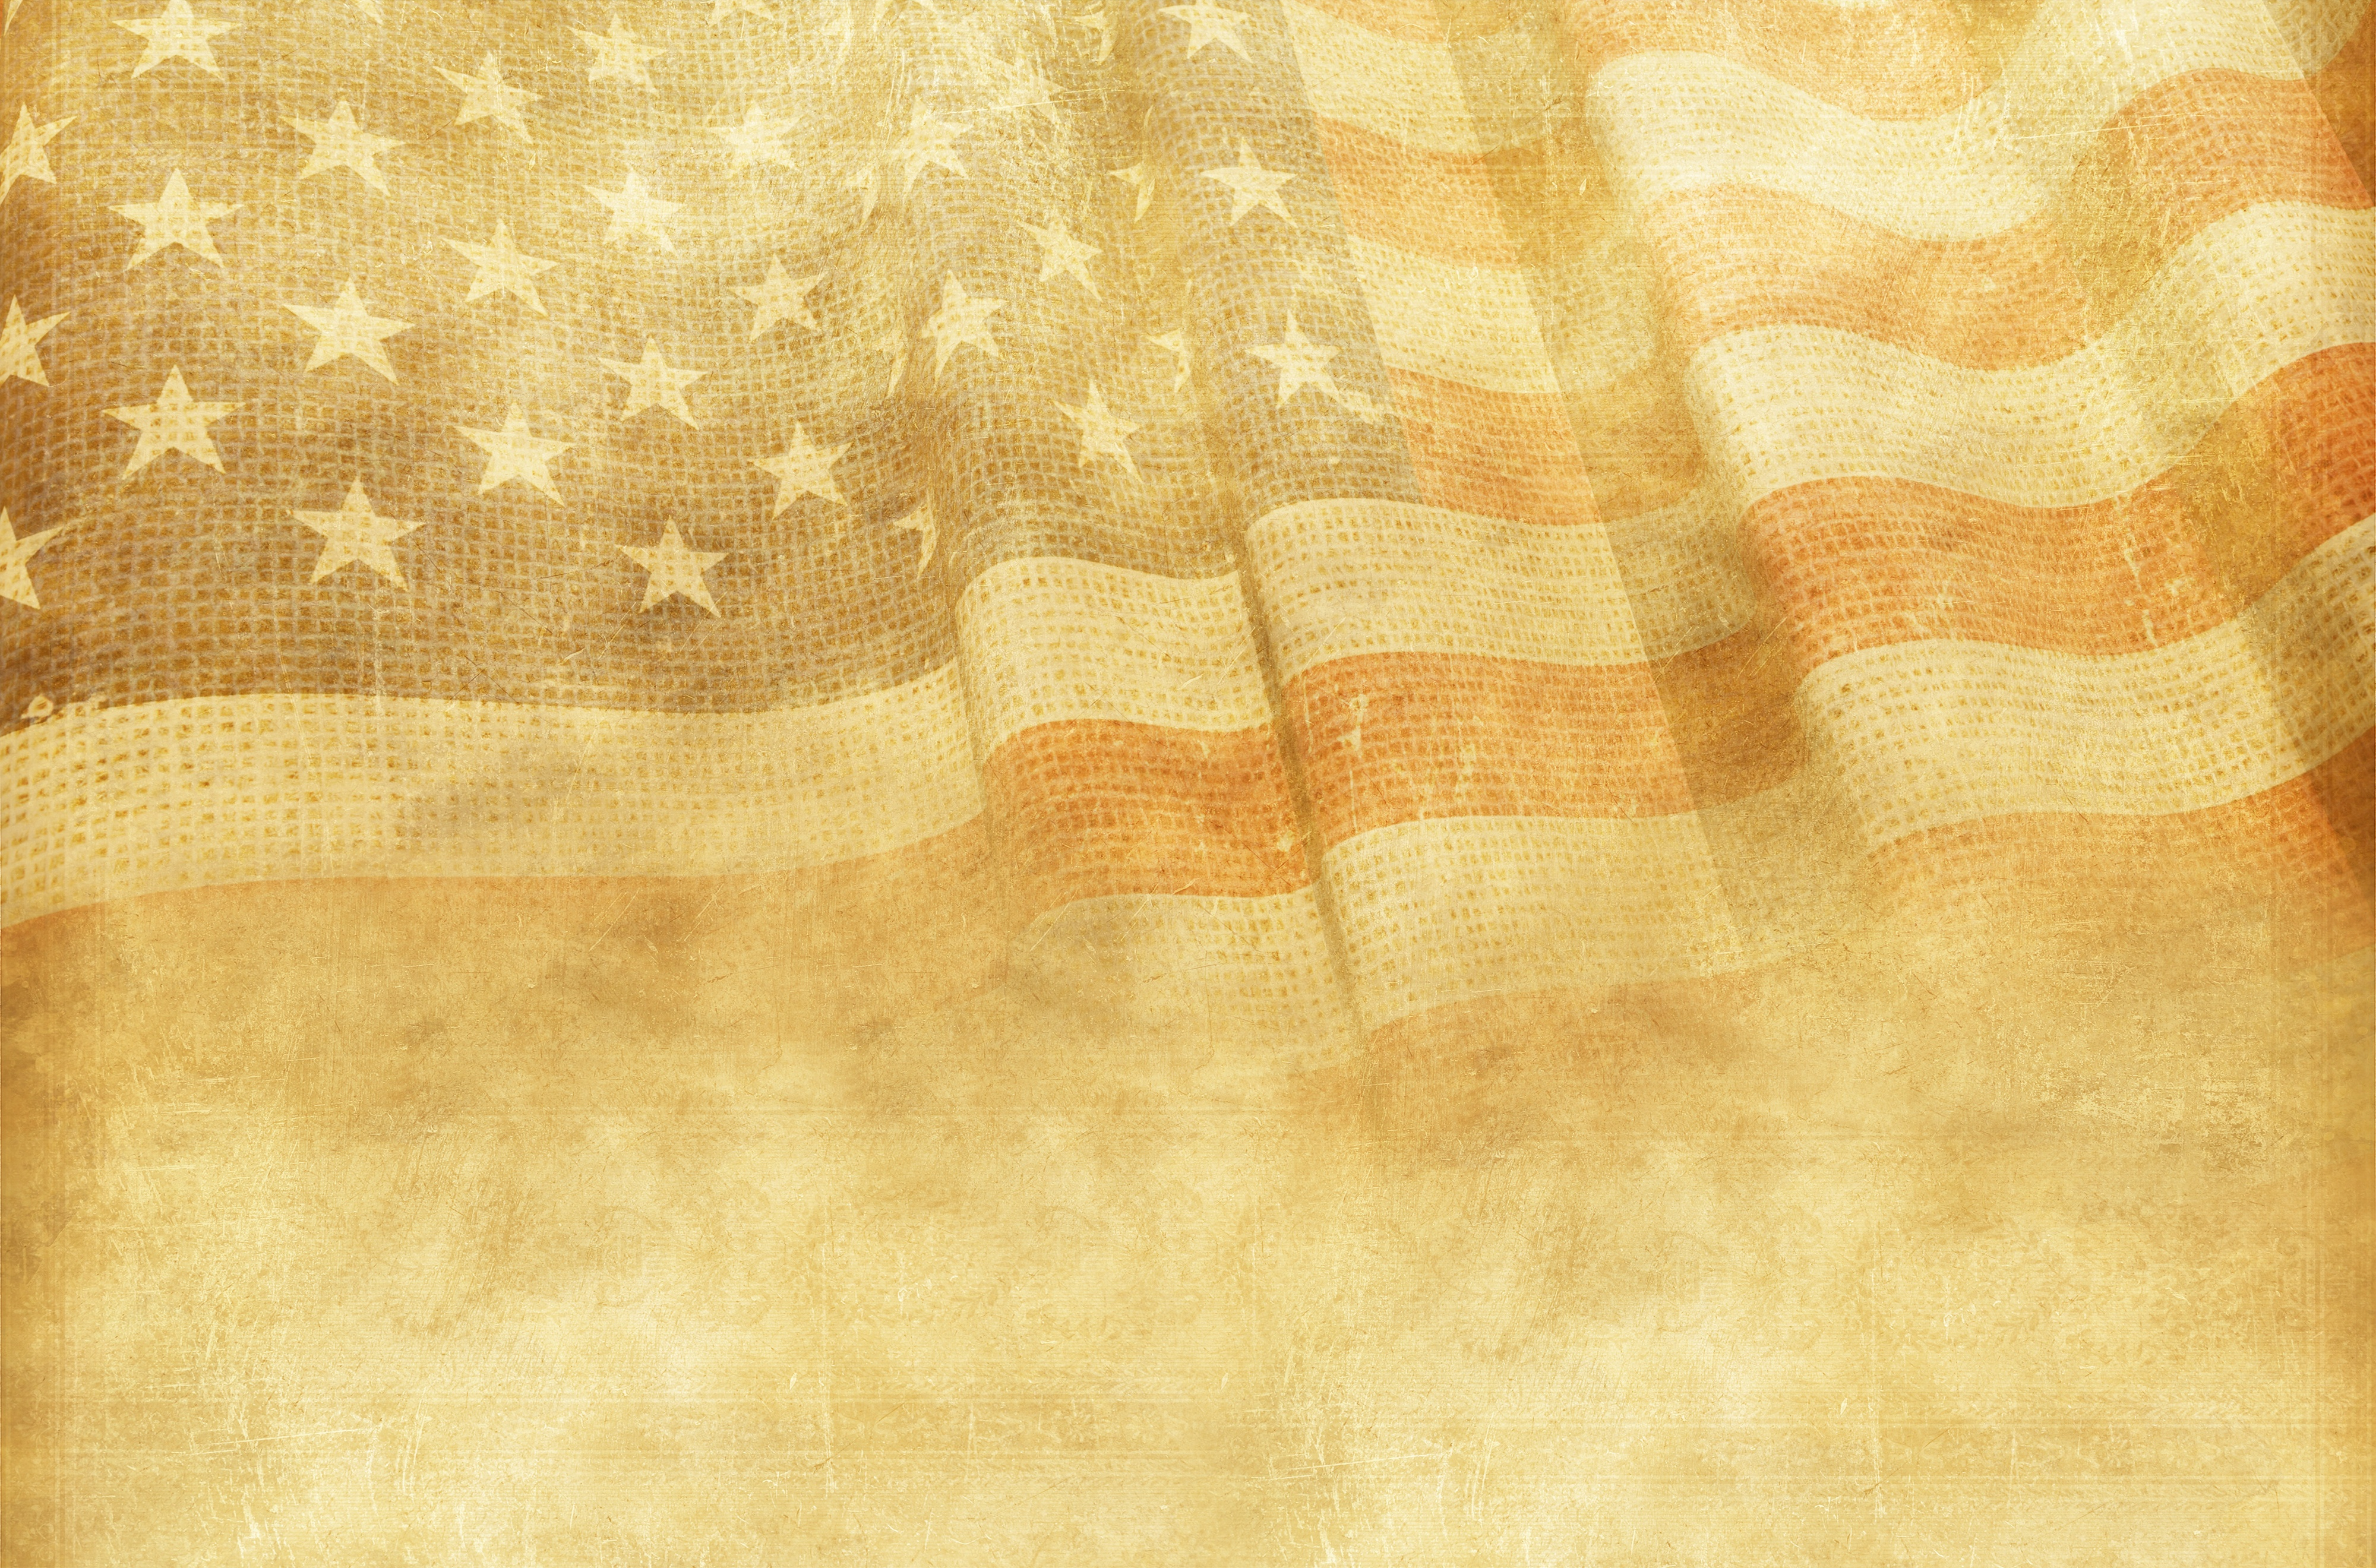 Vintage American Background Equity Diversity and Inclusion 4000x2640